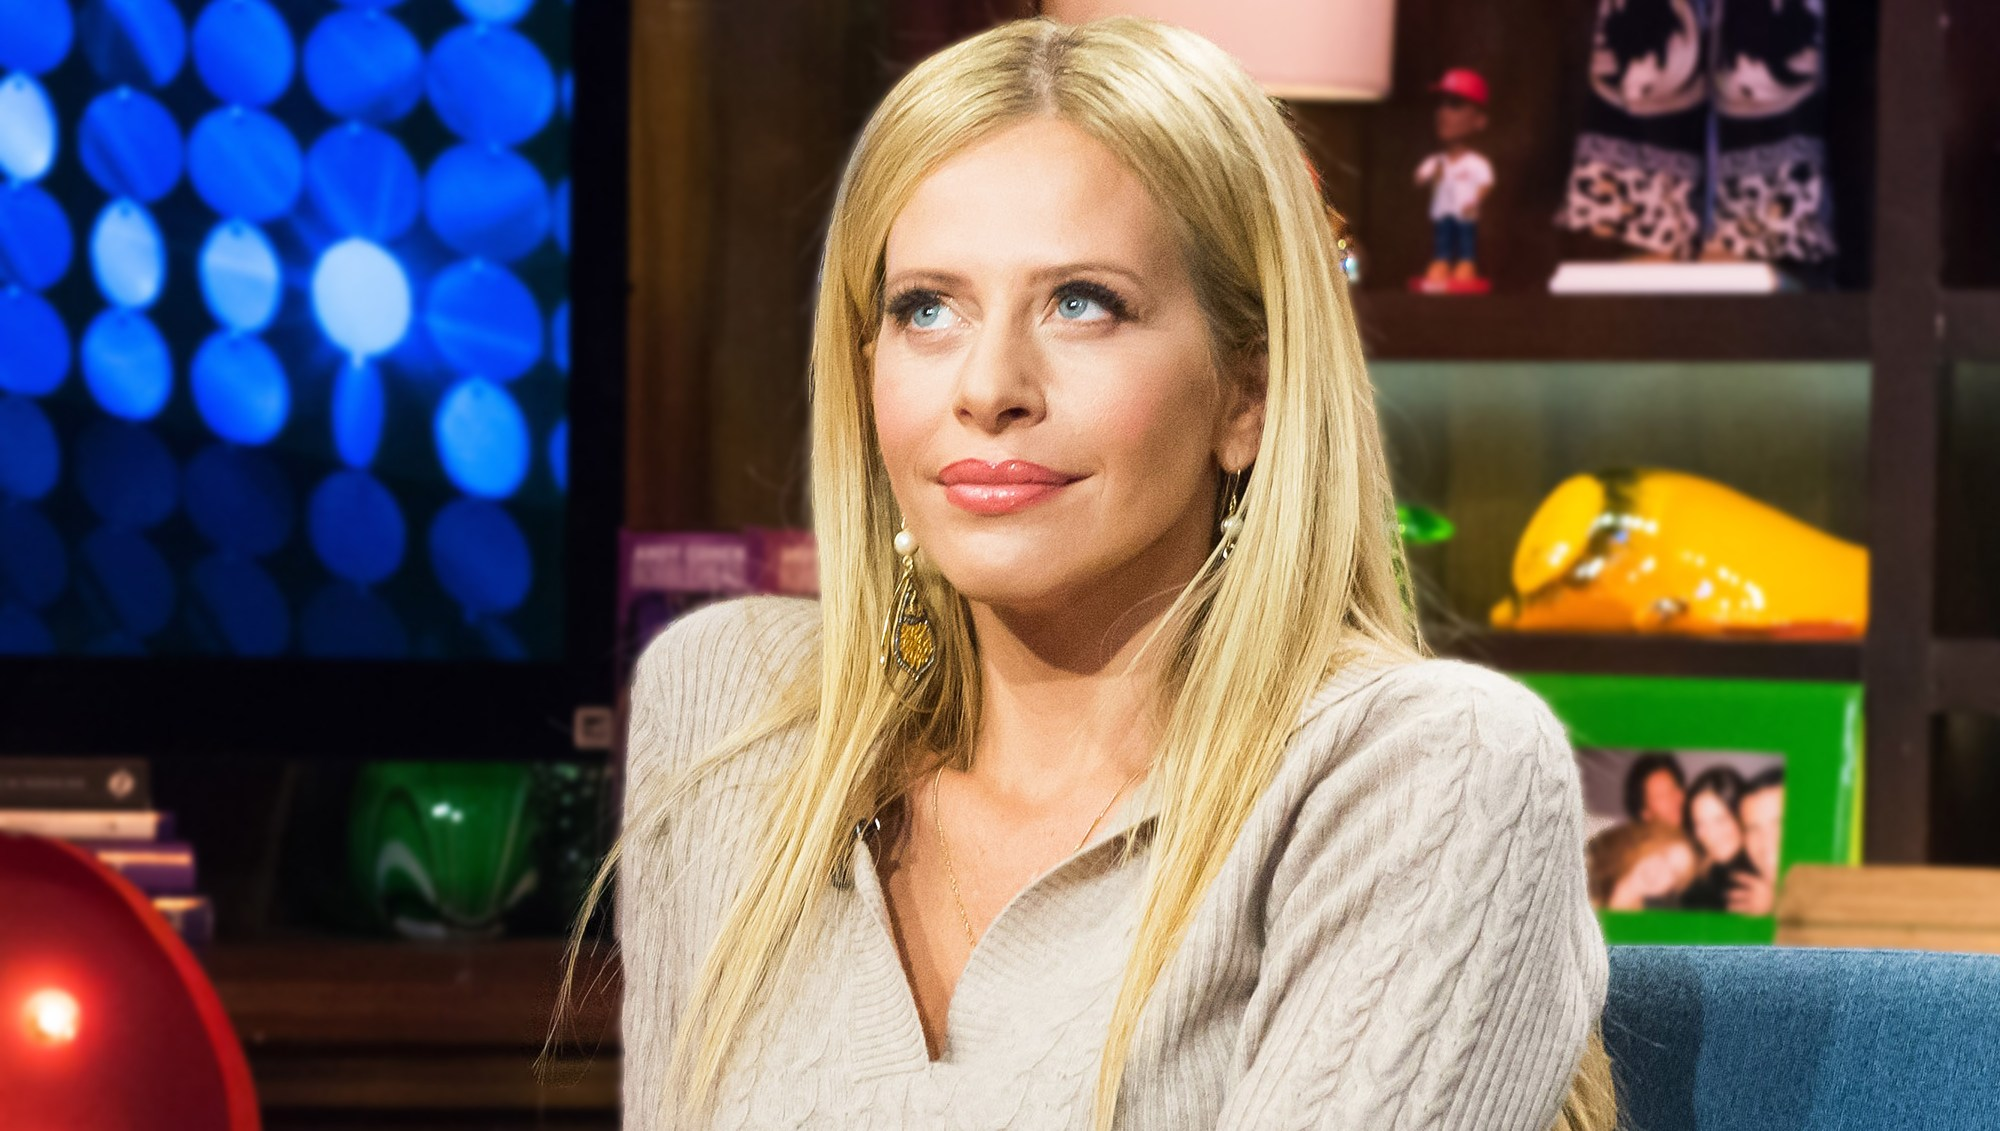 Dina Manzo Reveals She 'Recently Lost a Few Pregnancies'